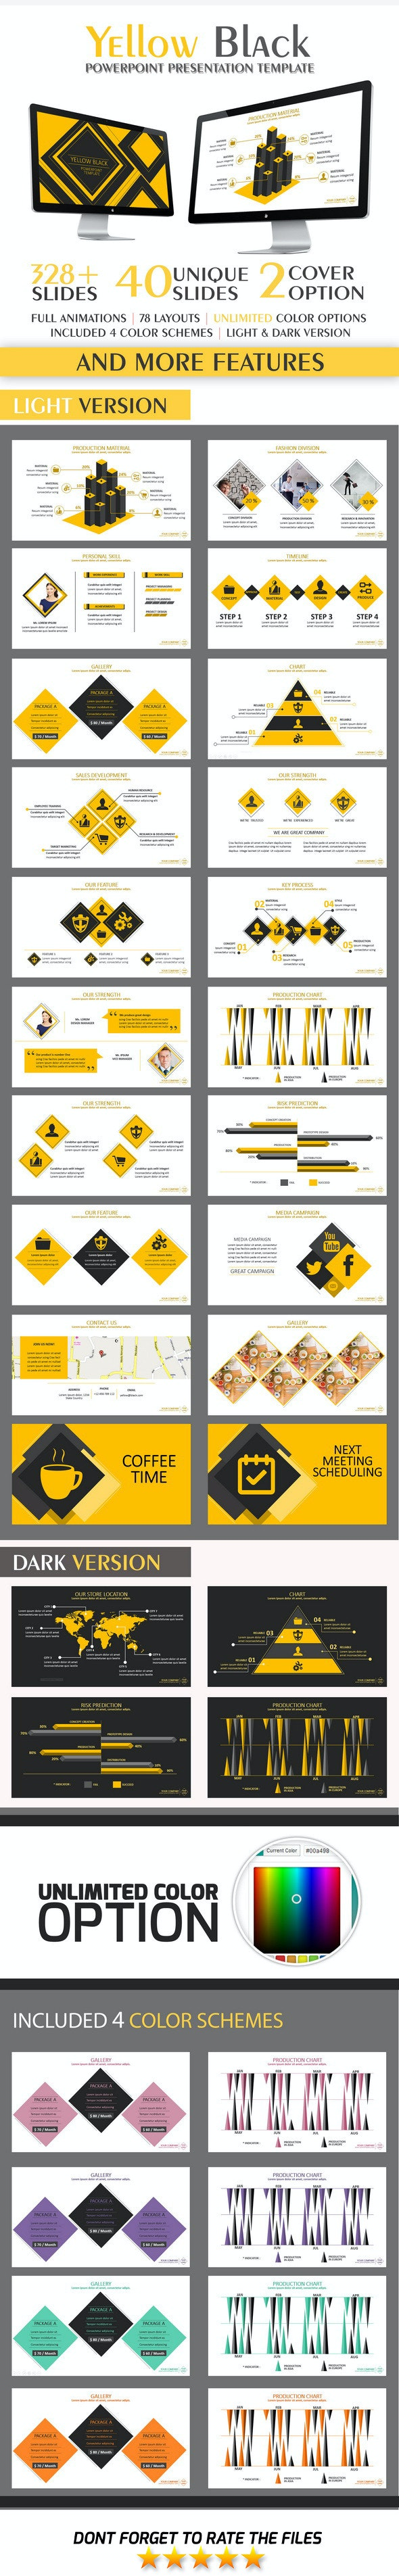 Yellow Black PowerPoint Template - Business PowerPoint Templates